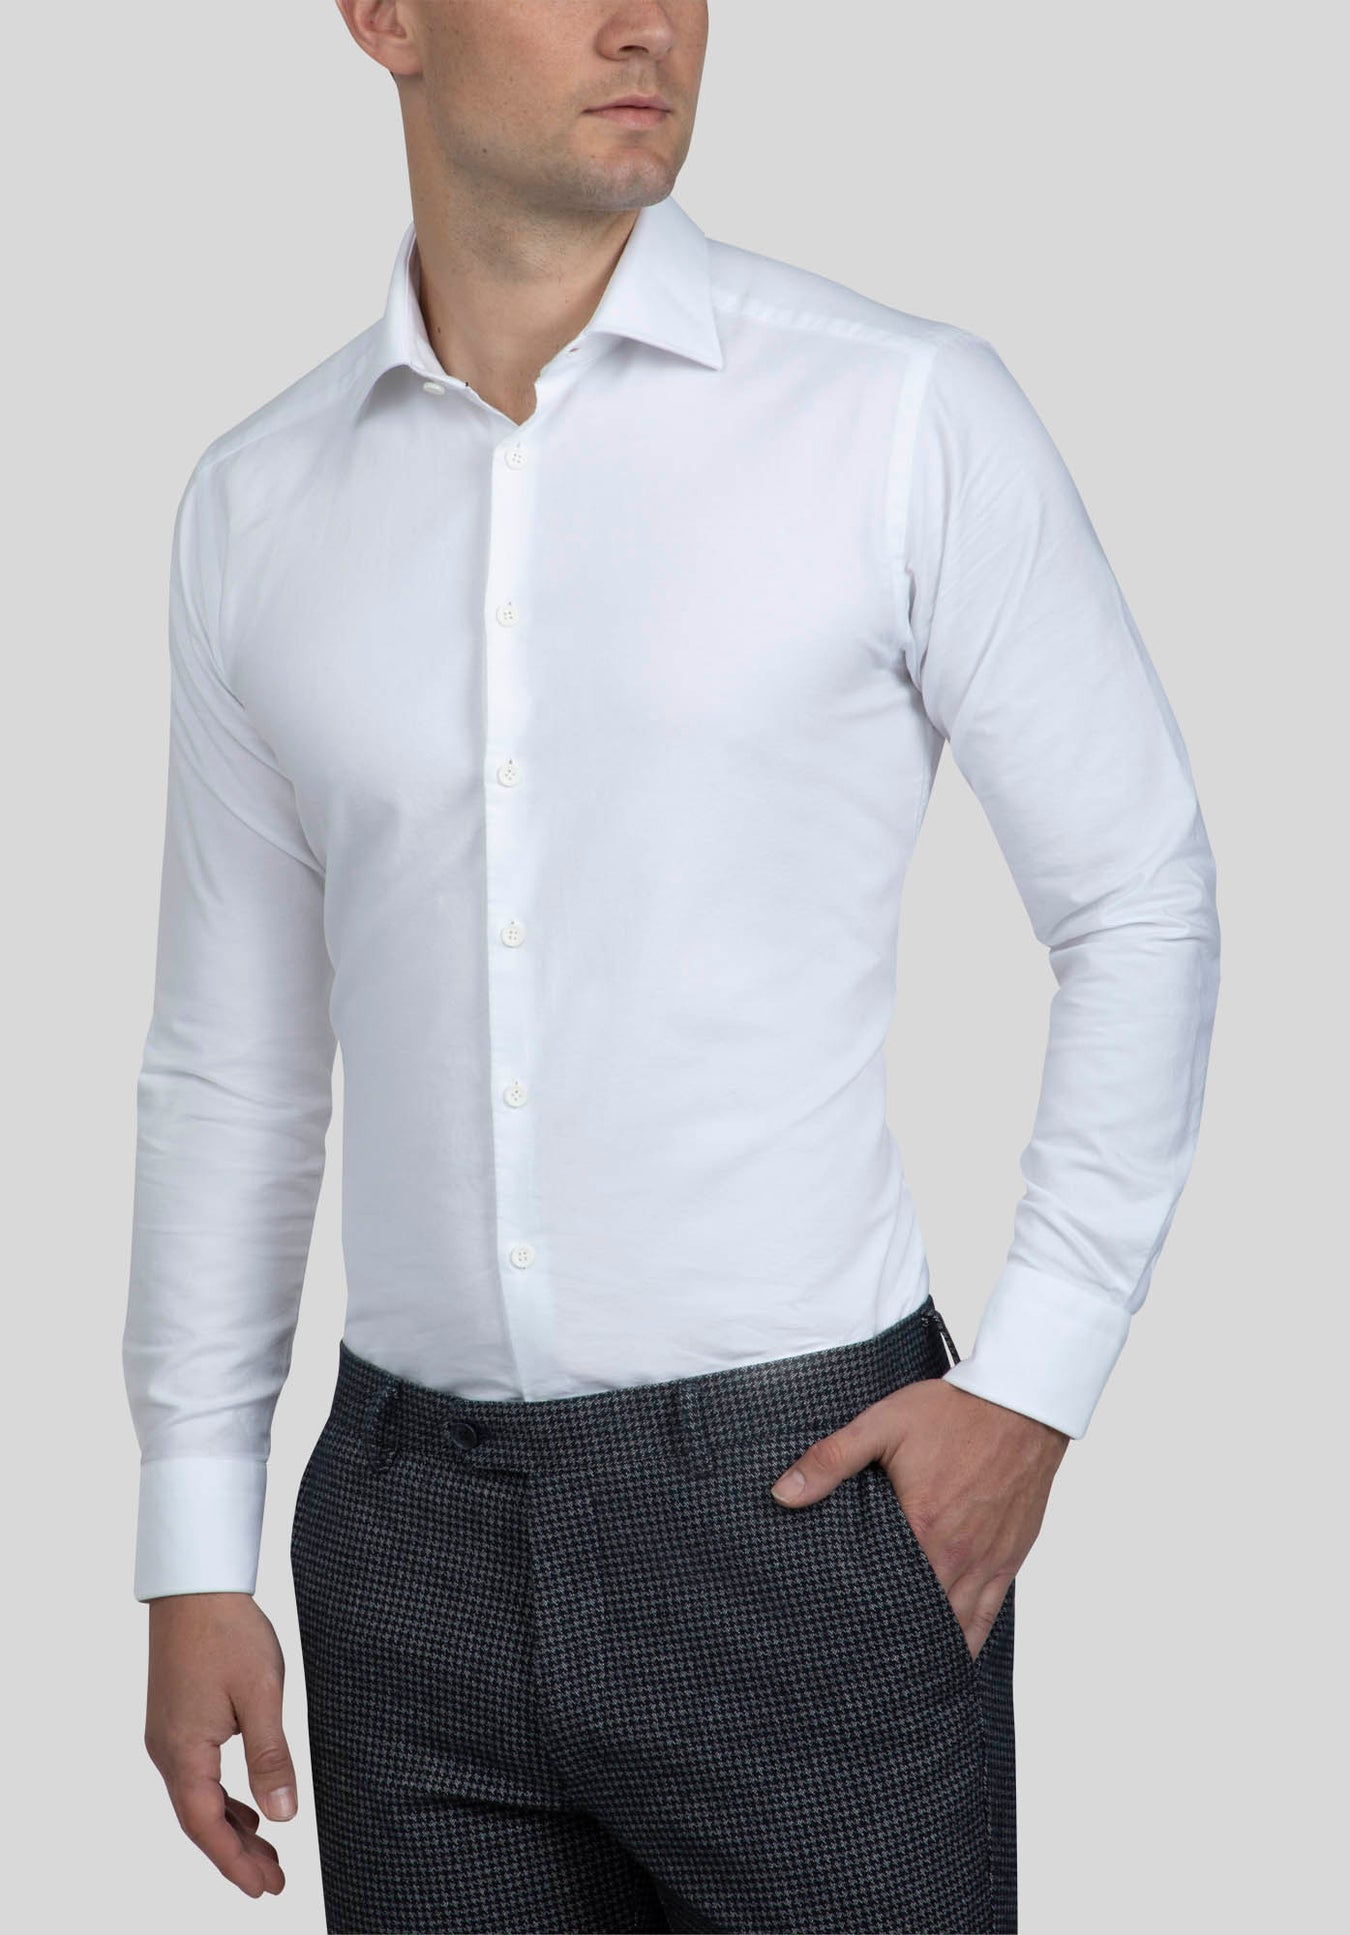 BRYSON SHIRT FAJ723 - White